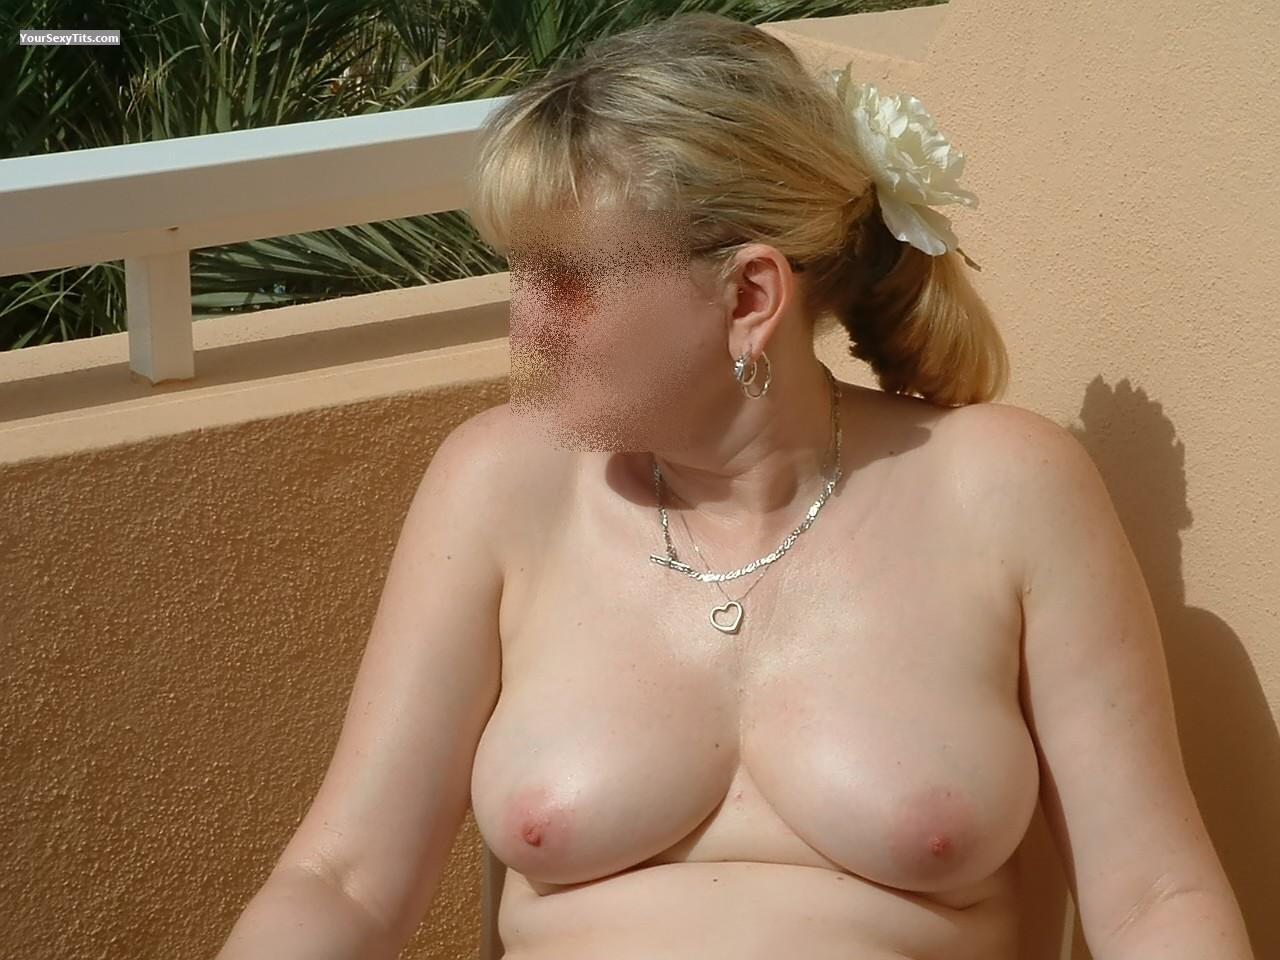 Tit Flash: Wife's Big Tits - Debbie from United States